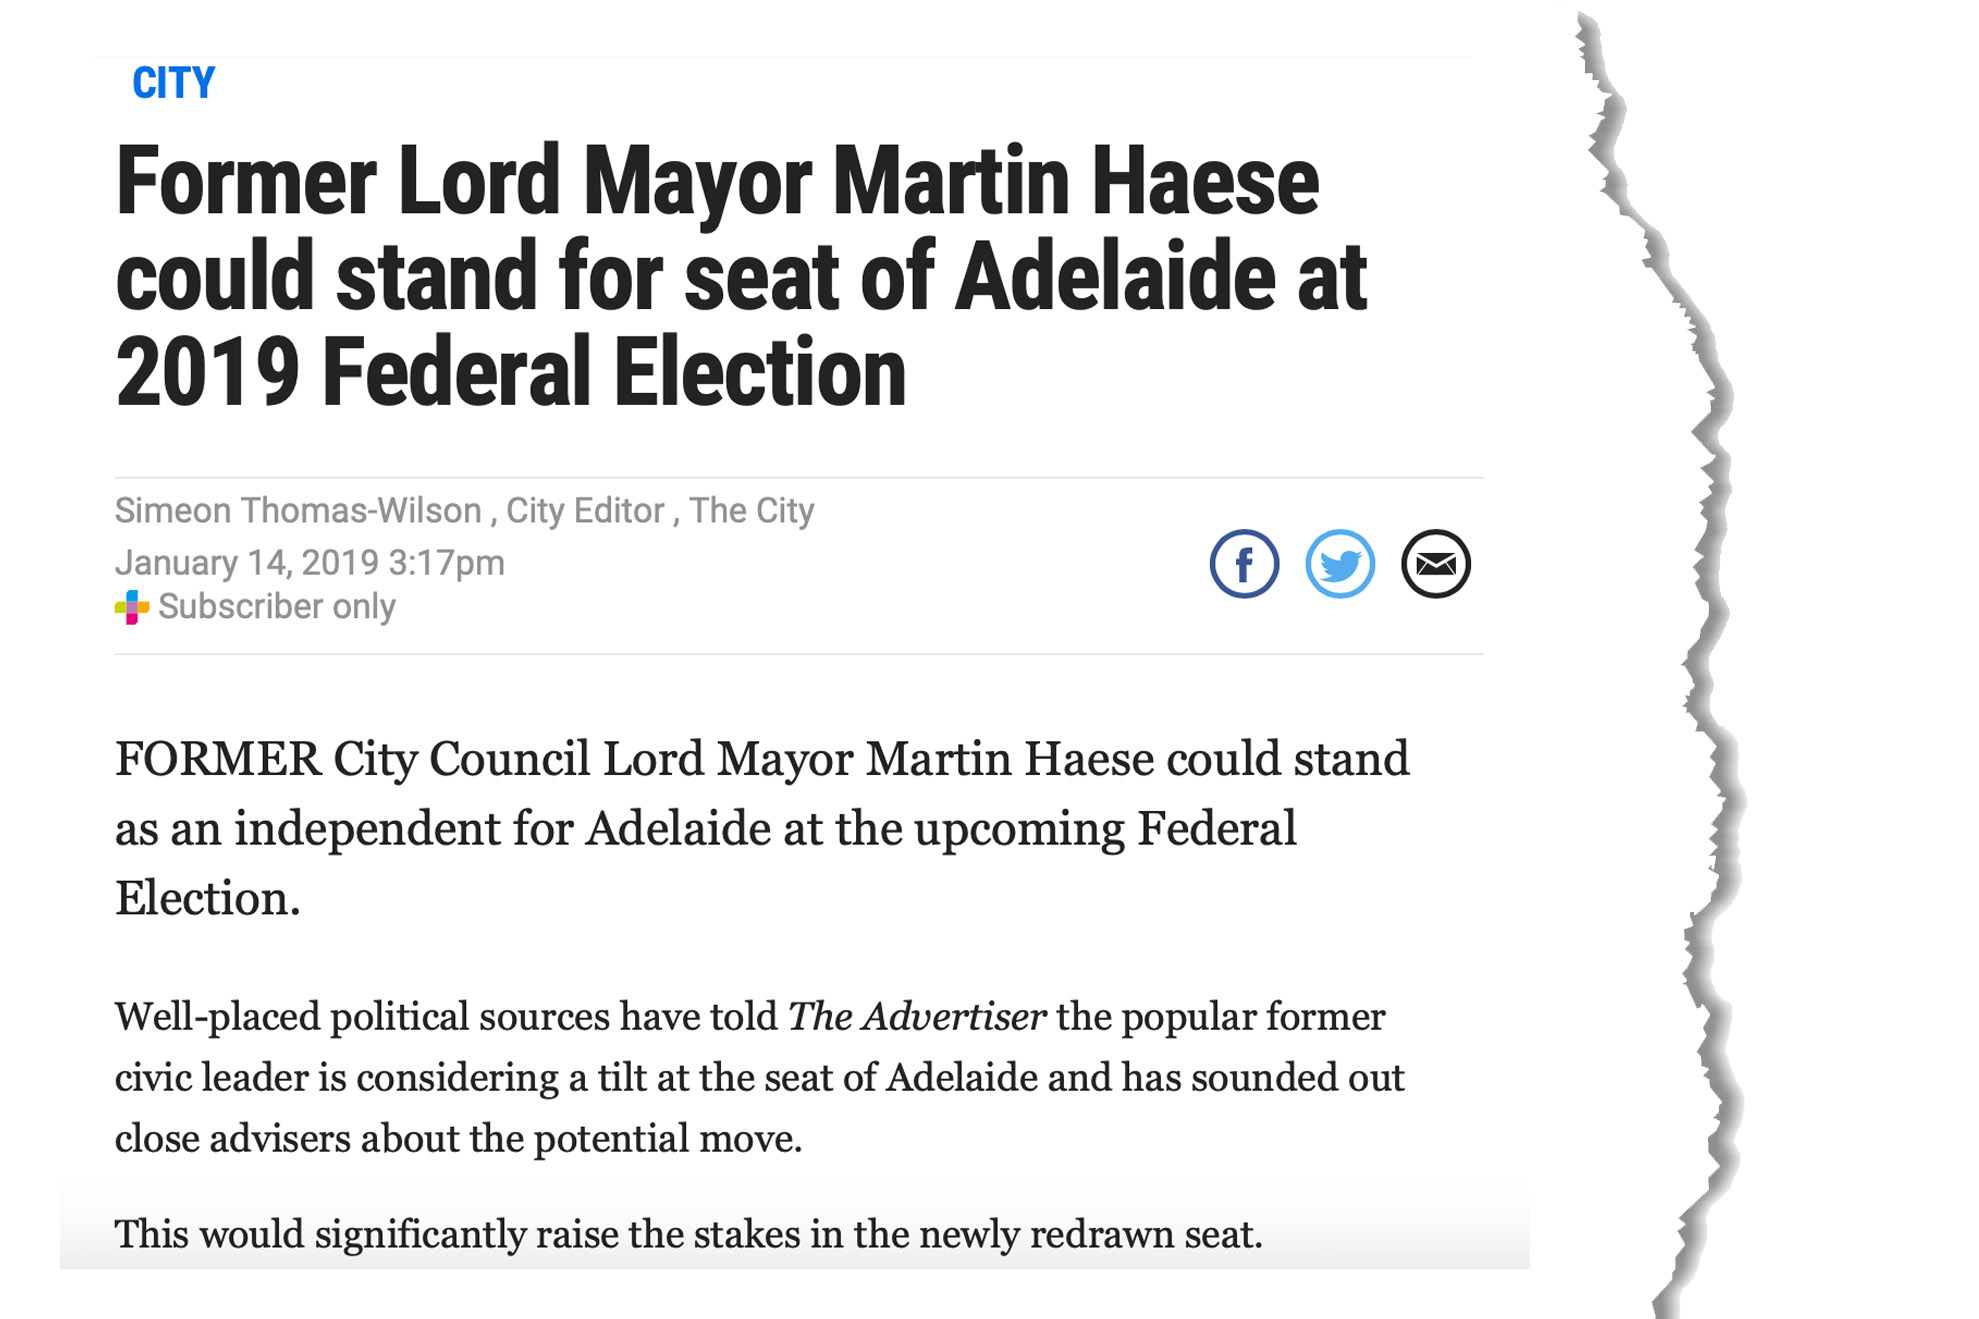 martin-haese-federal-electio-speculation-adelaide-now-14-january-2019